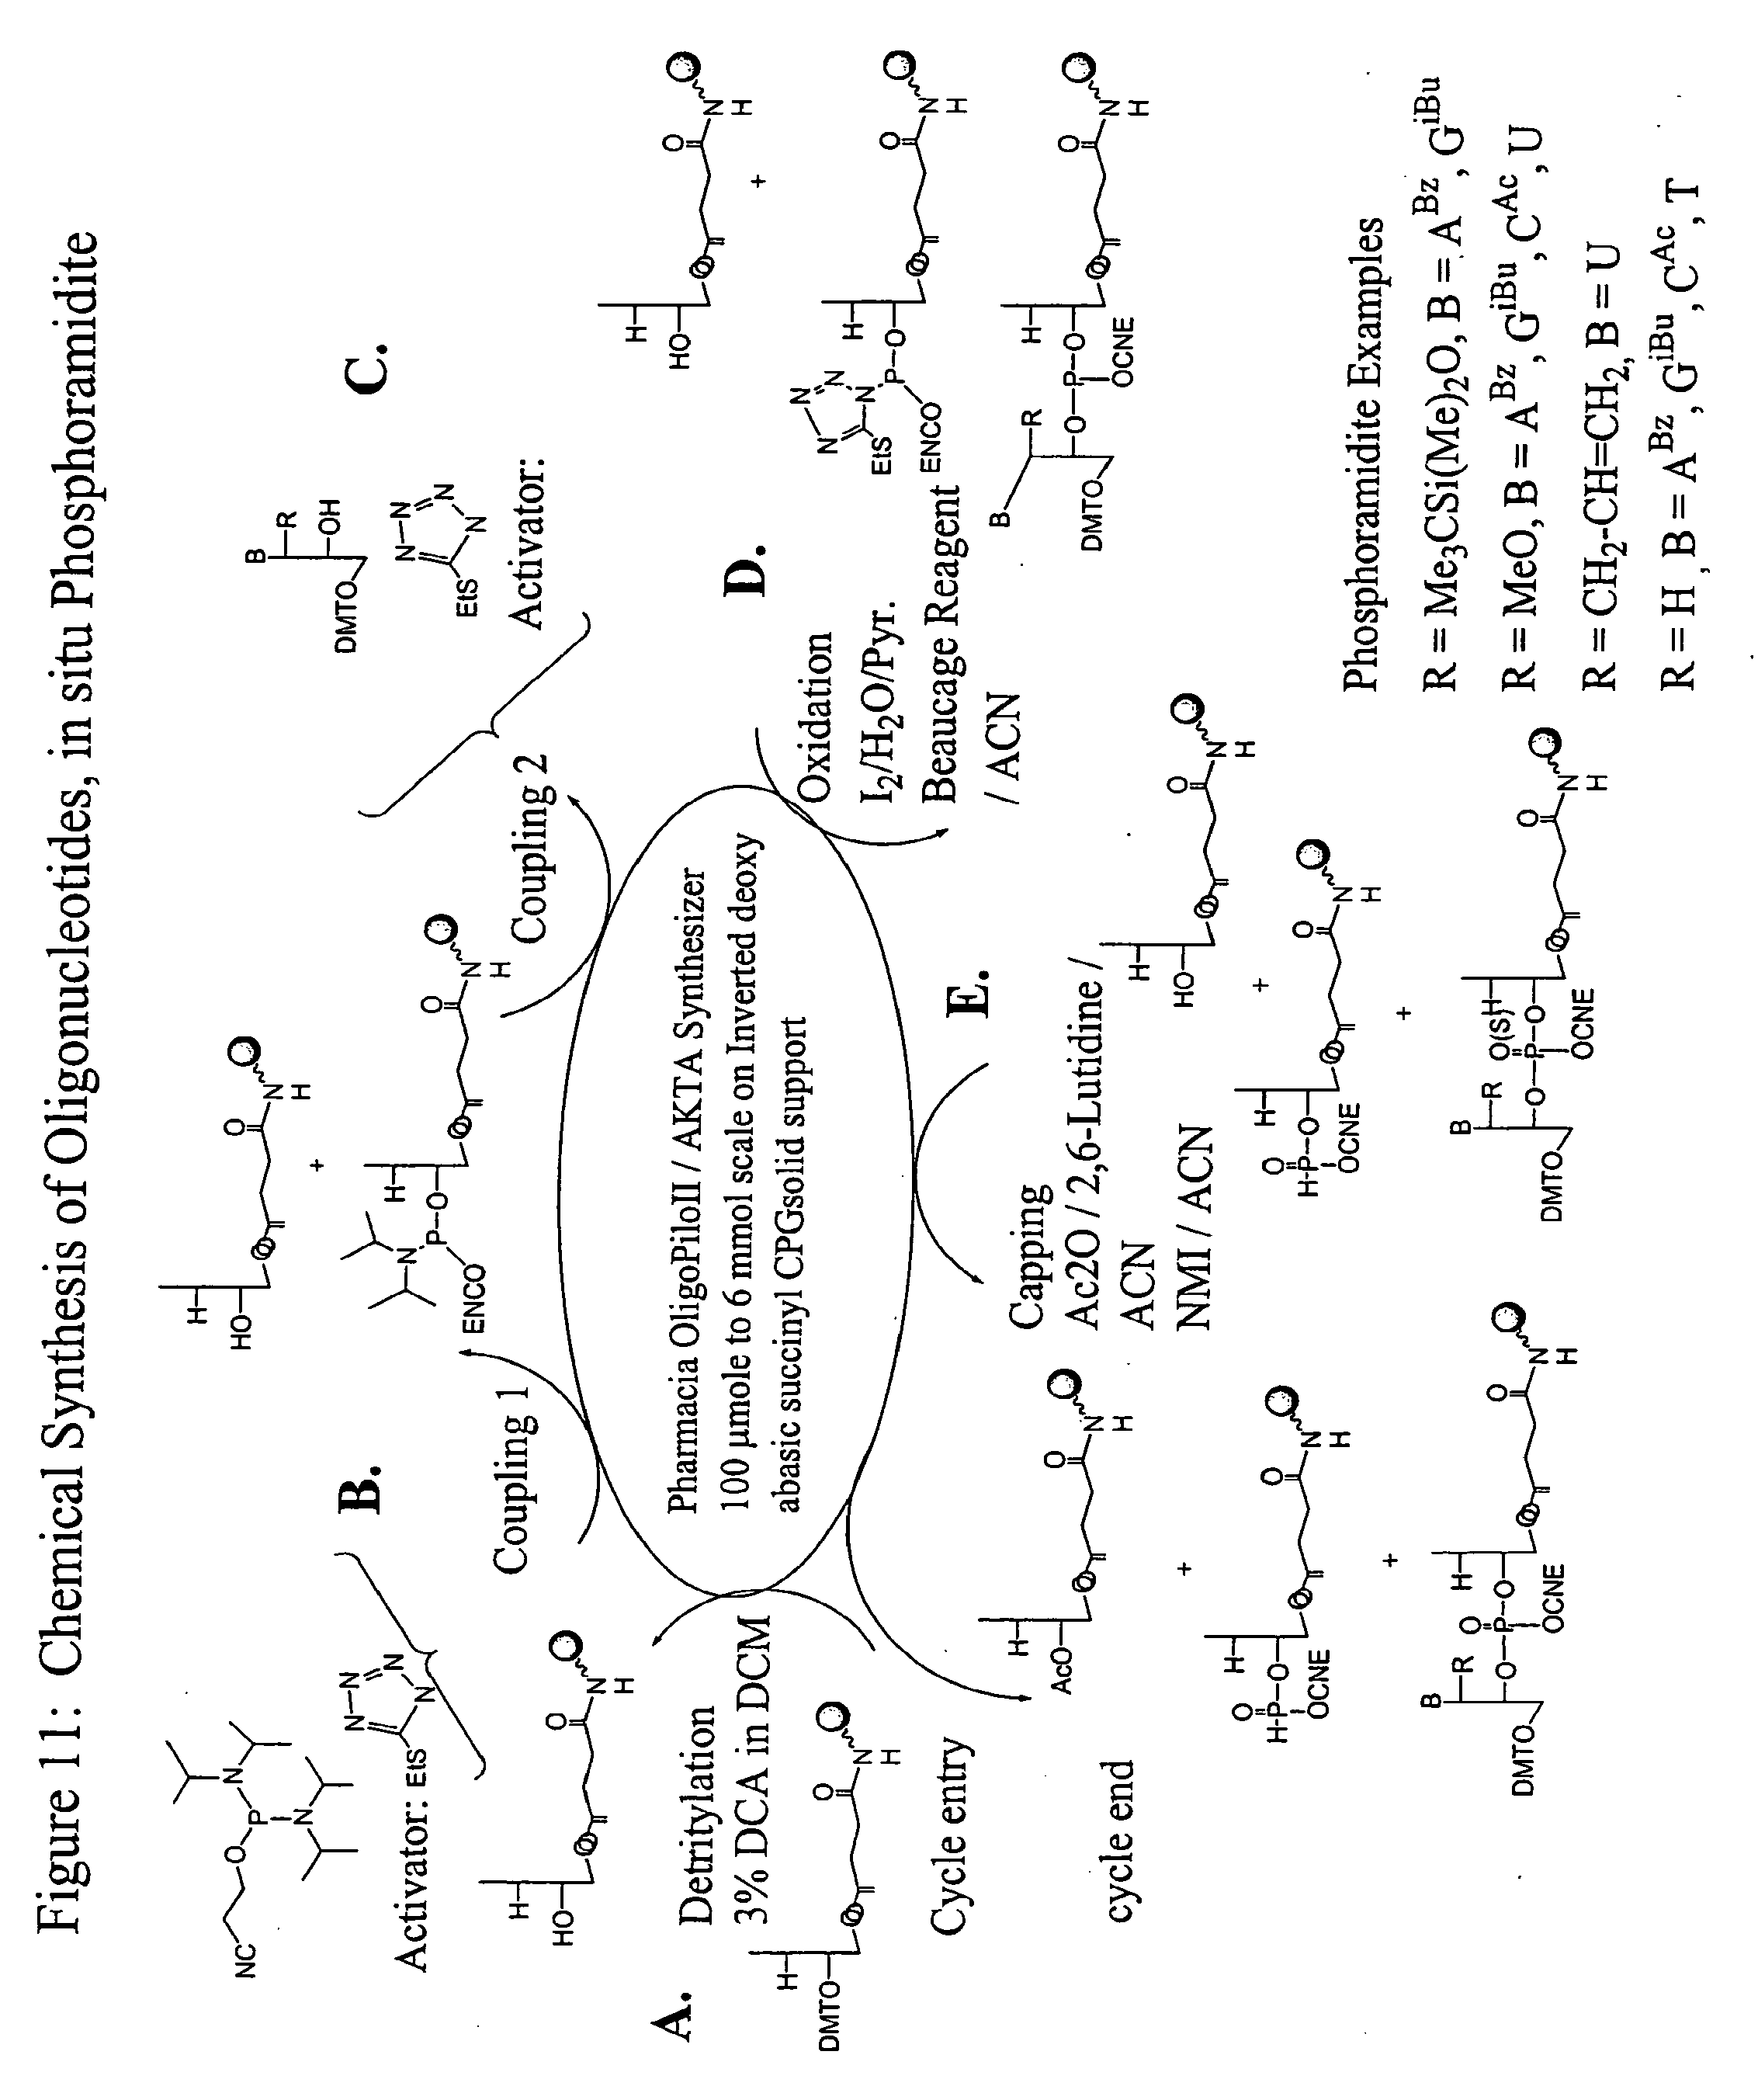 the solid-phase oxidation of steroidal alkenes with potassium permanganate and metal salts